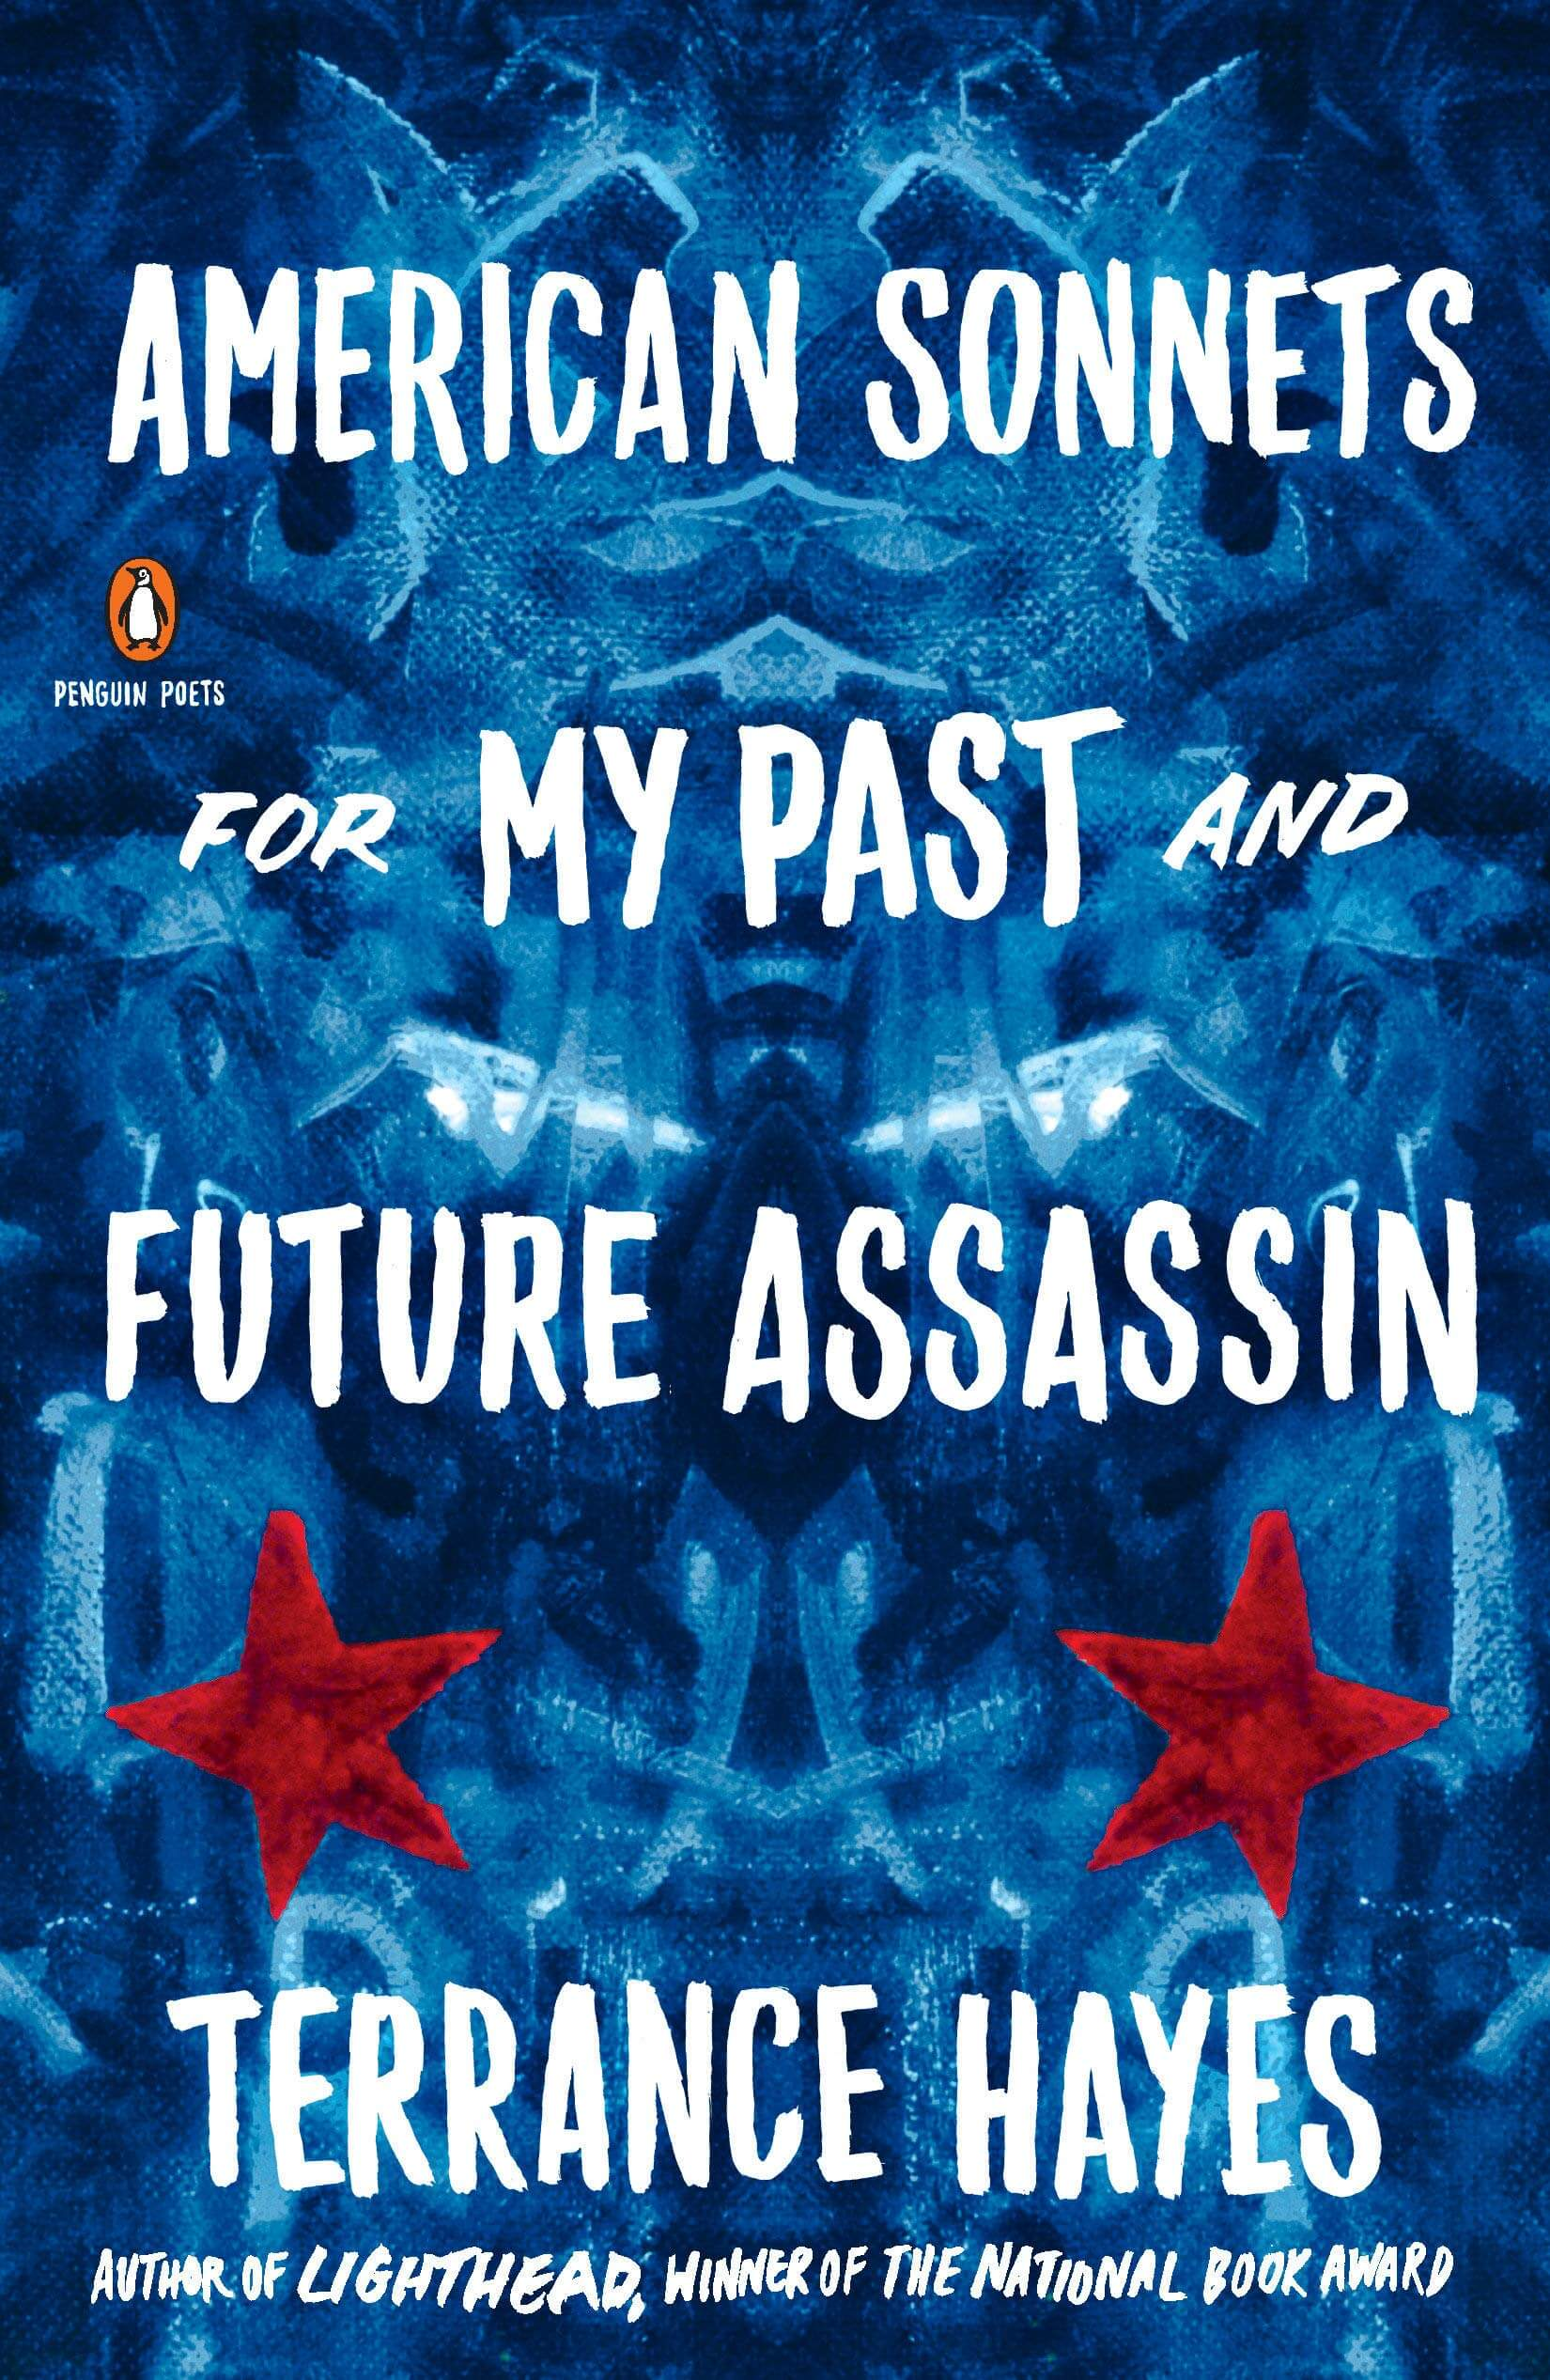 American Sonnets for My Past and Future Assassin book cover image